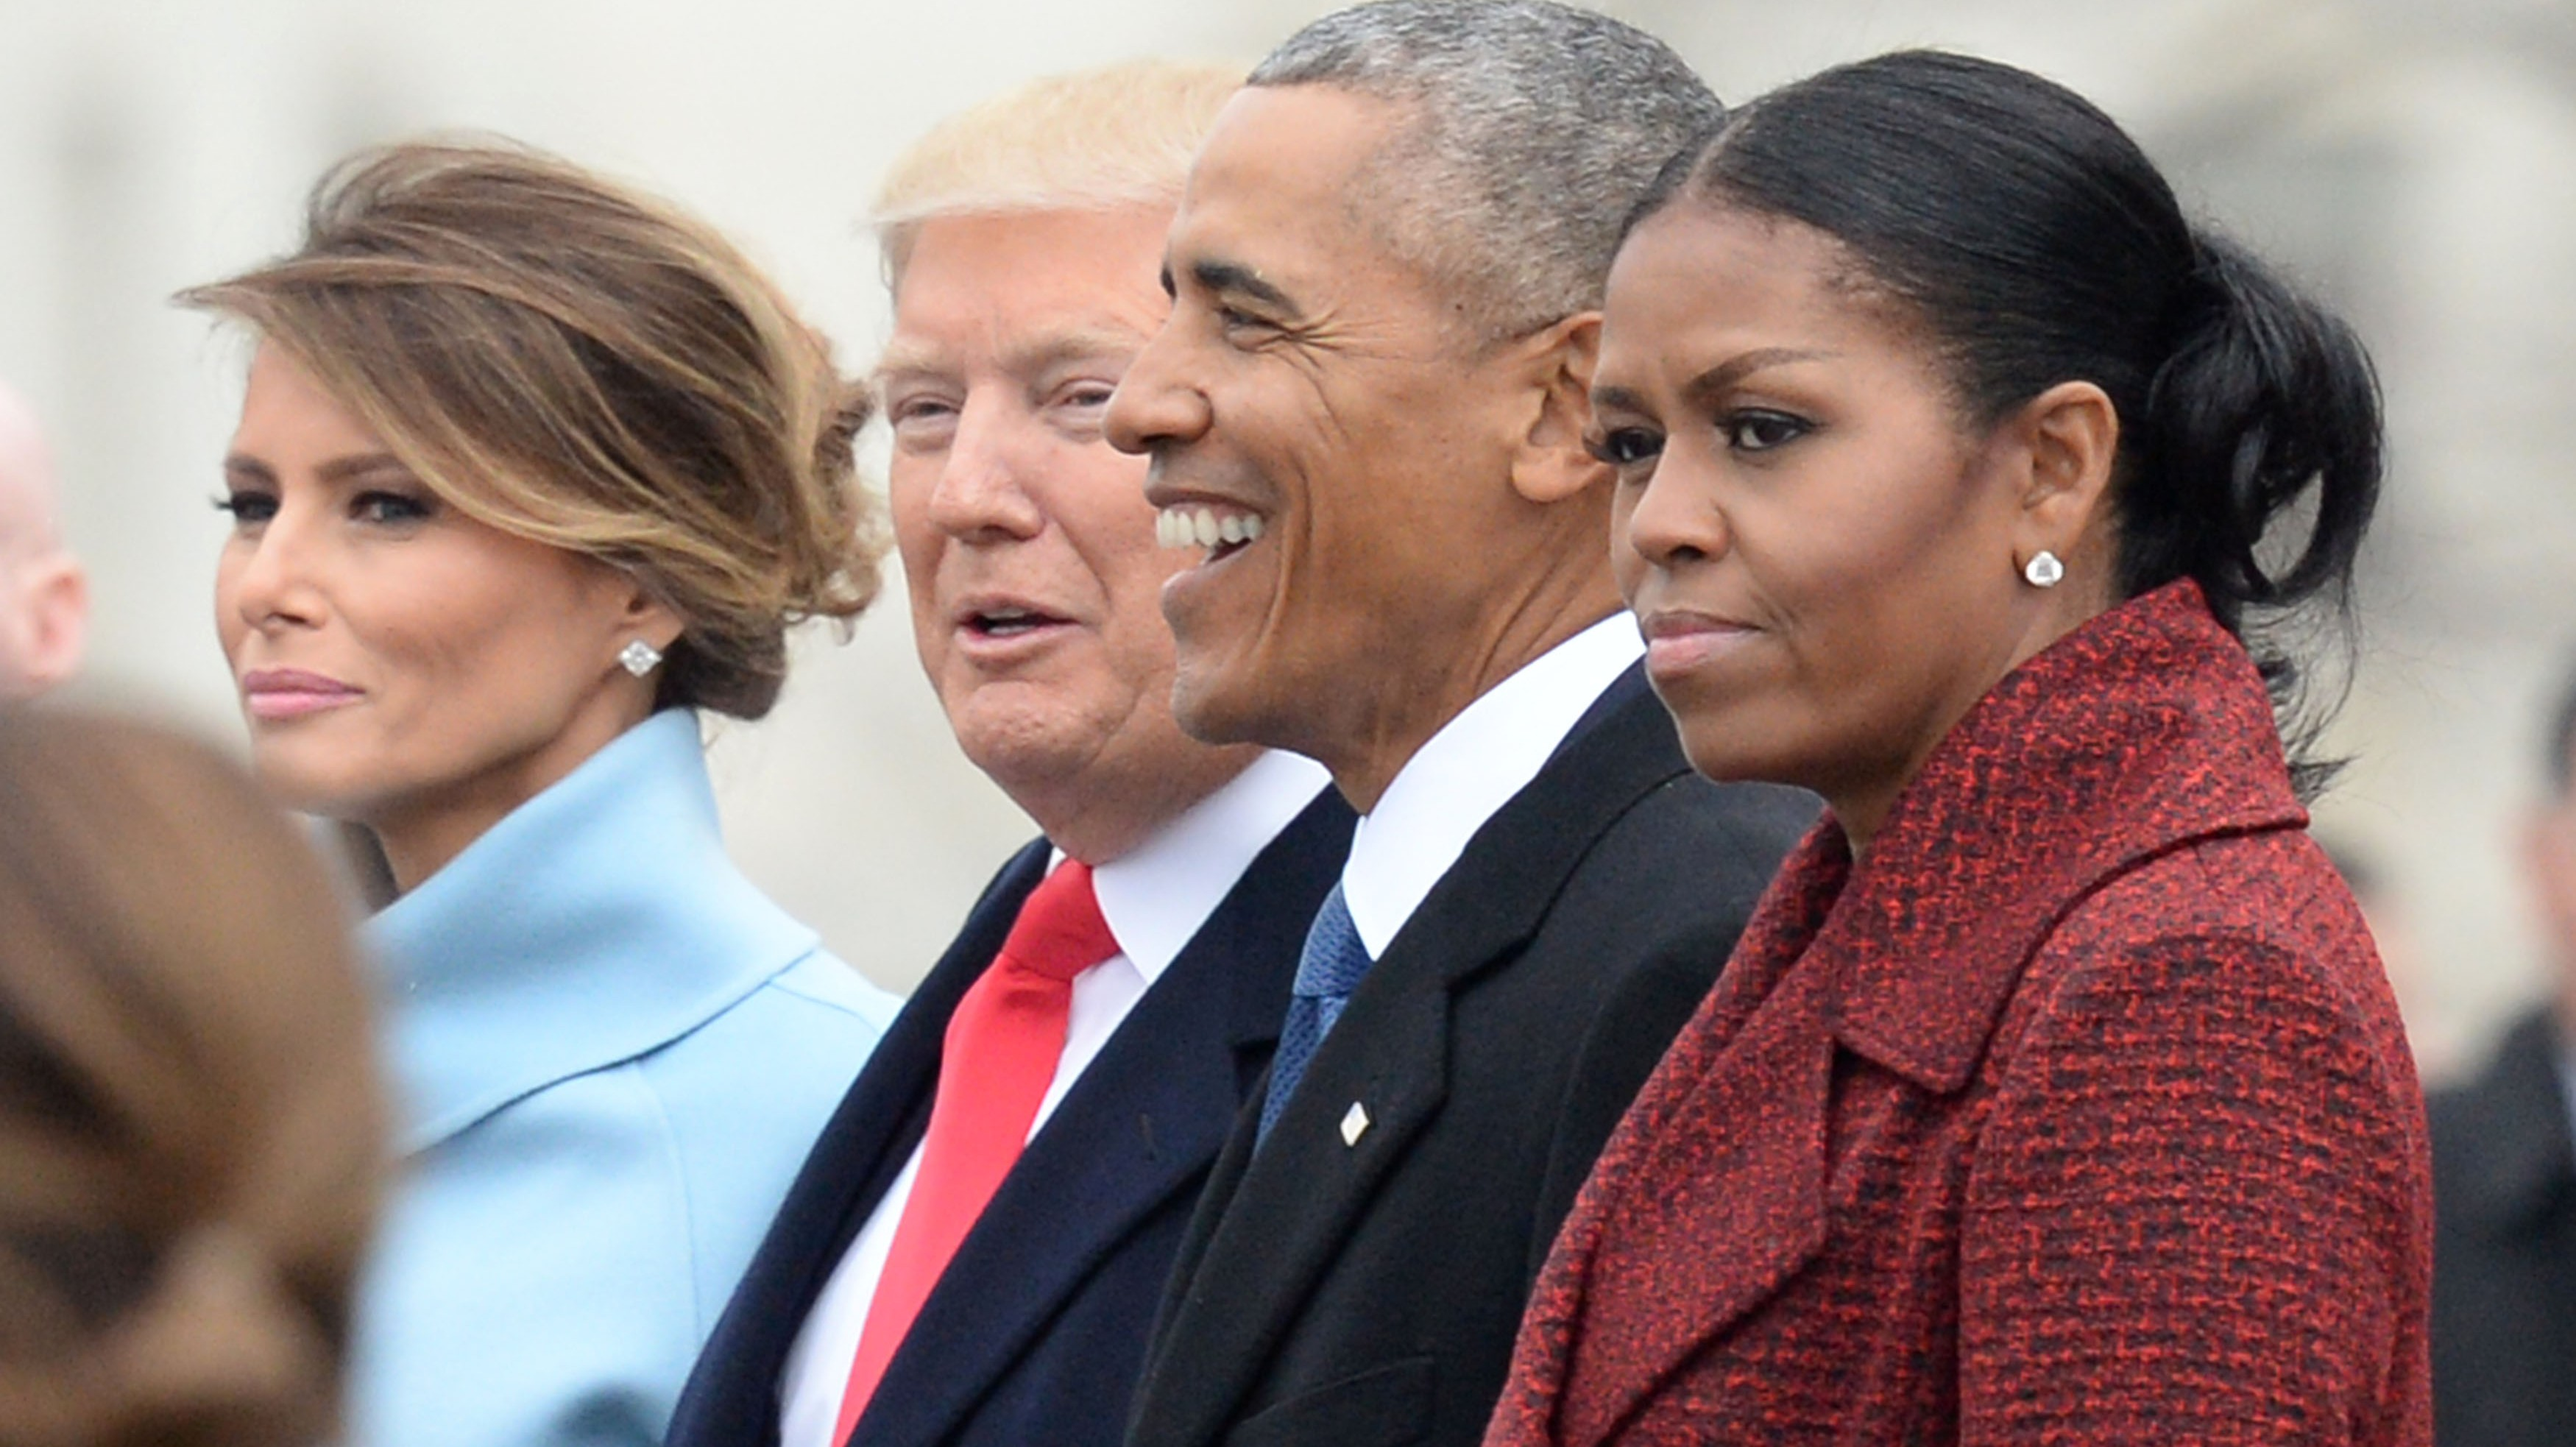 Michelle Obama Said She'd 'Never Forgive' Trump and Now He's Pissed